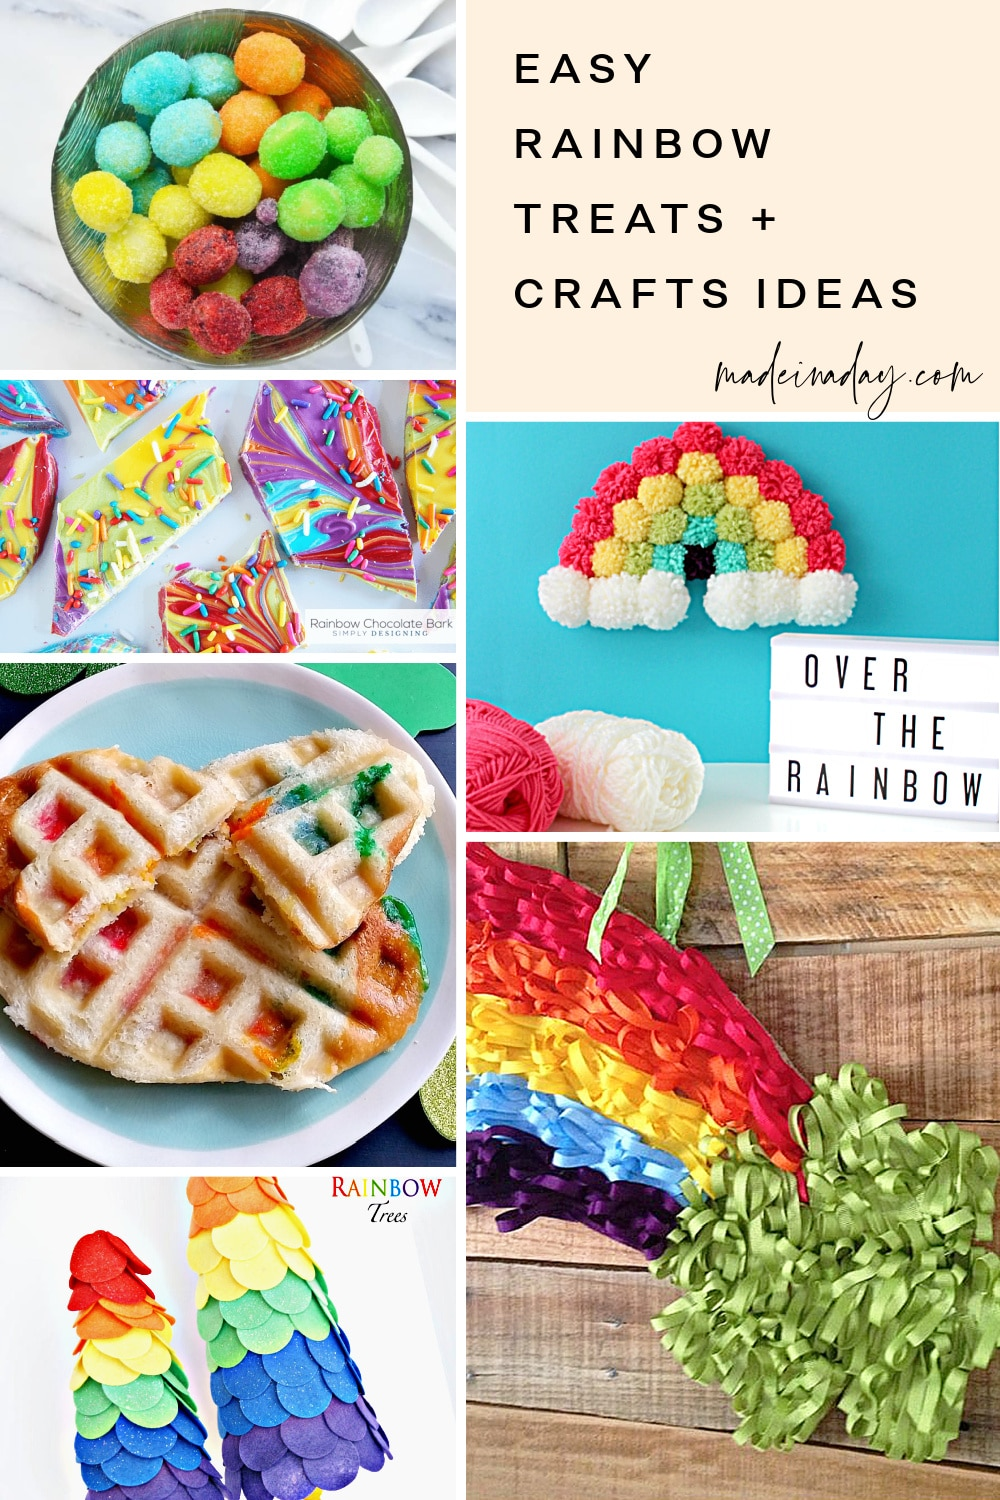 12 Easy Rainbow Treats and Crafts Ideas